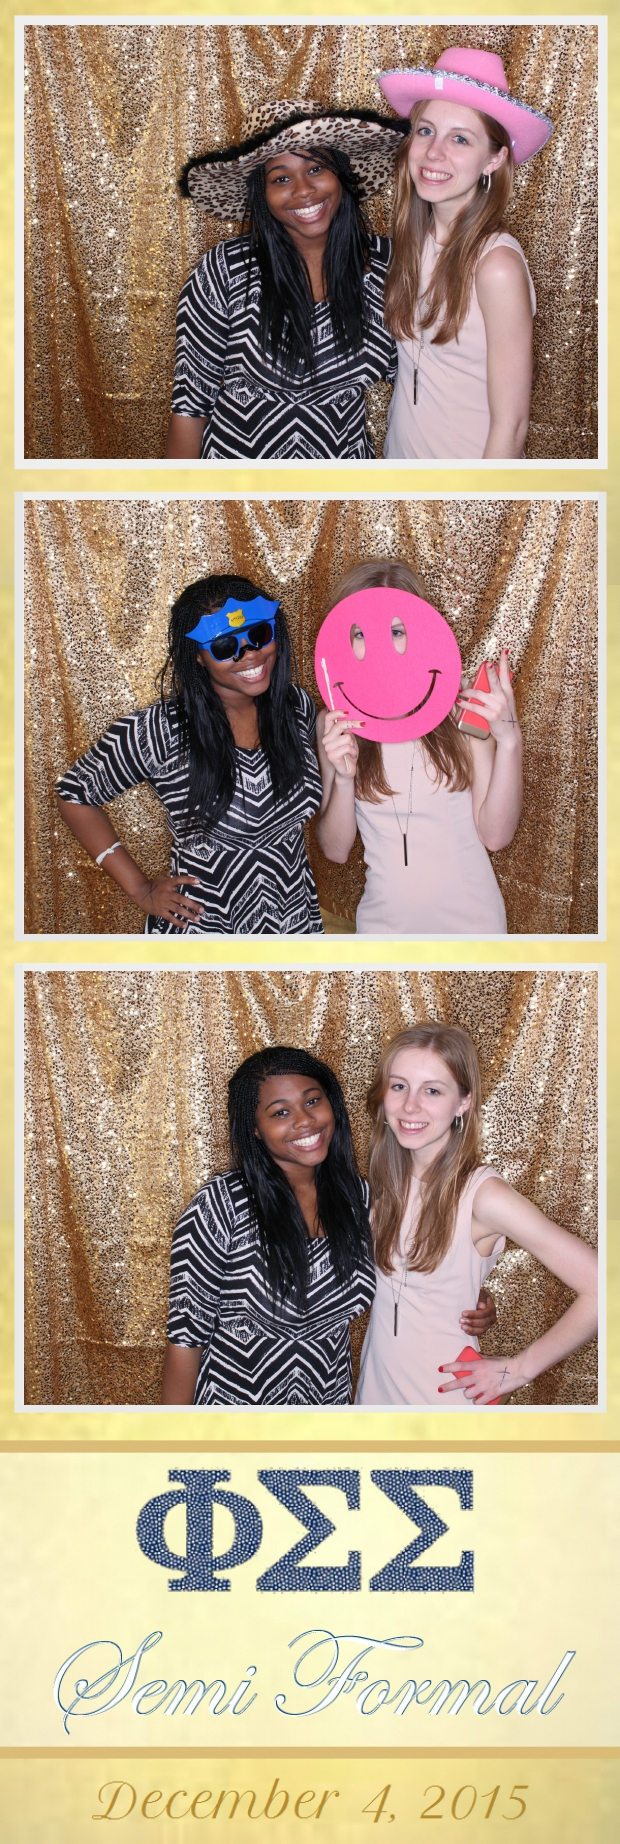 Guest House Events Photo Booth Phi Sigma Sigma Semi Formal (72).jpg